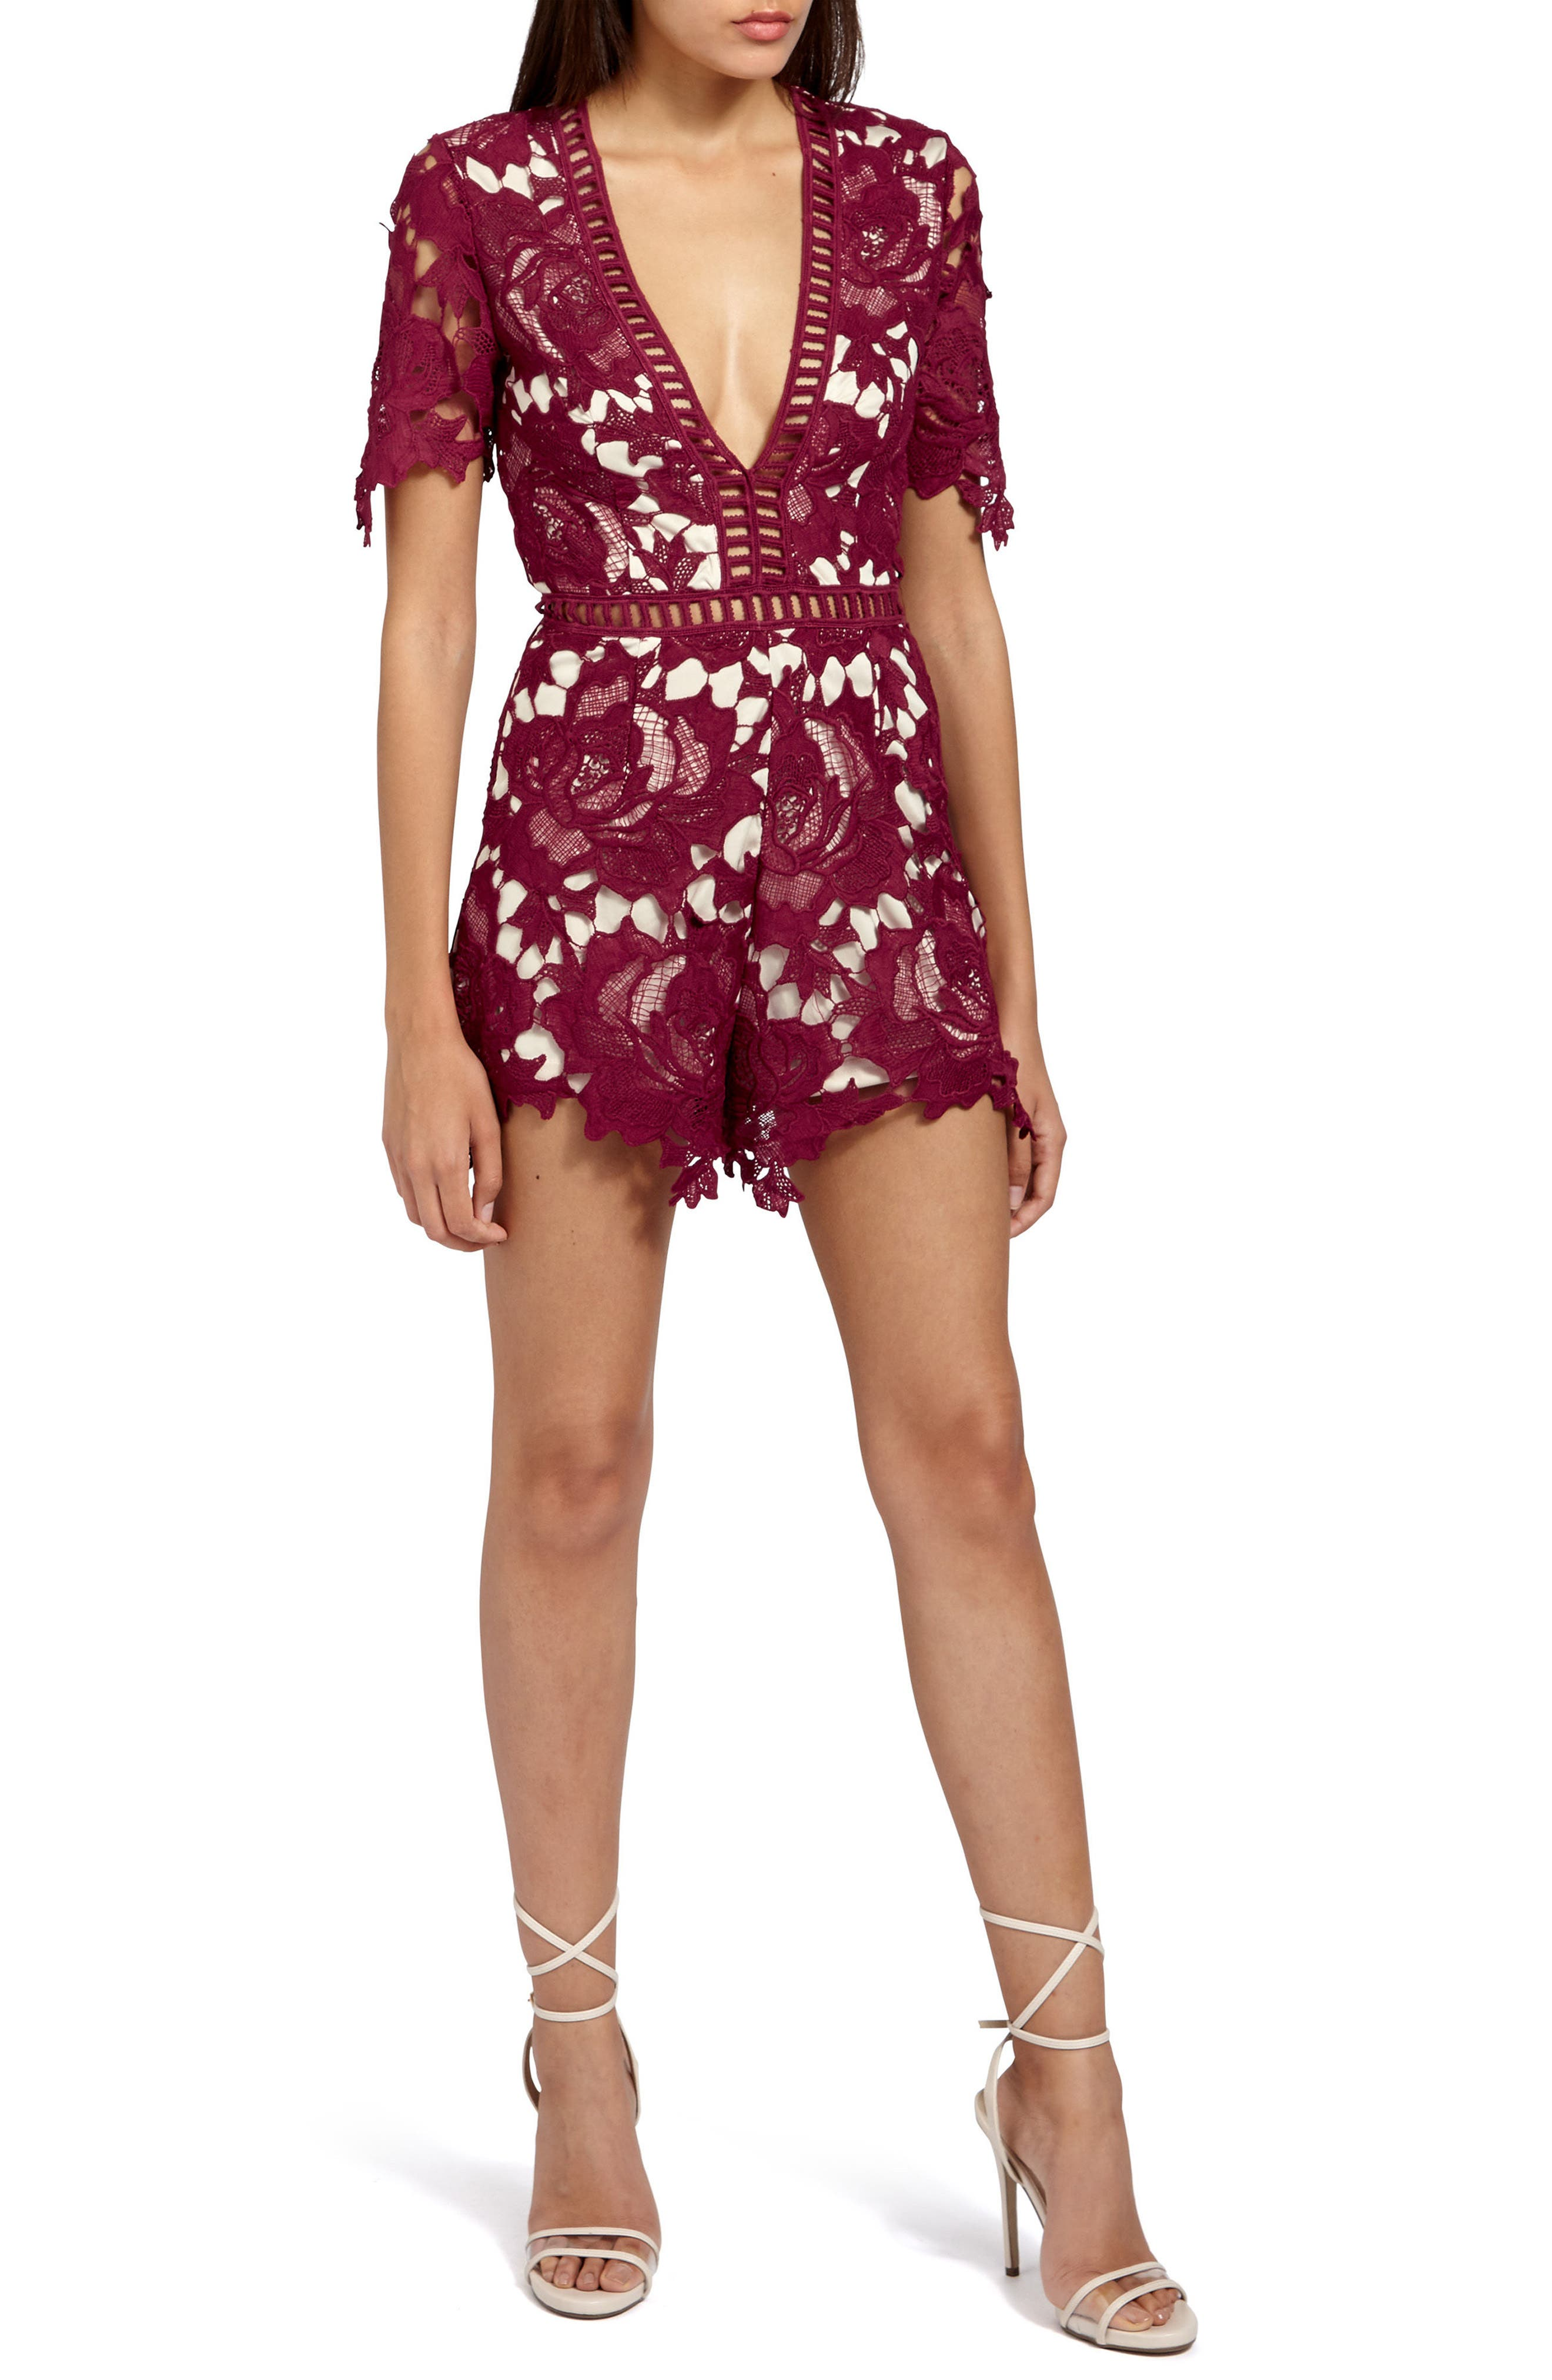 Ladder Stitch Lace Romper,                             Main thumbnail 1, color,                             Burgundy